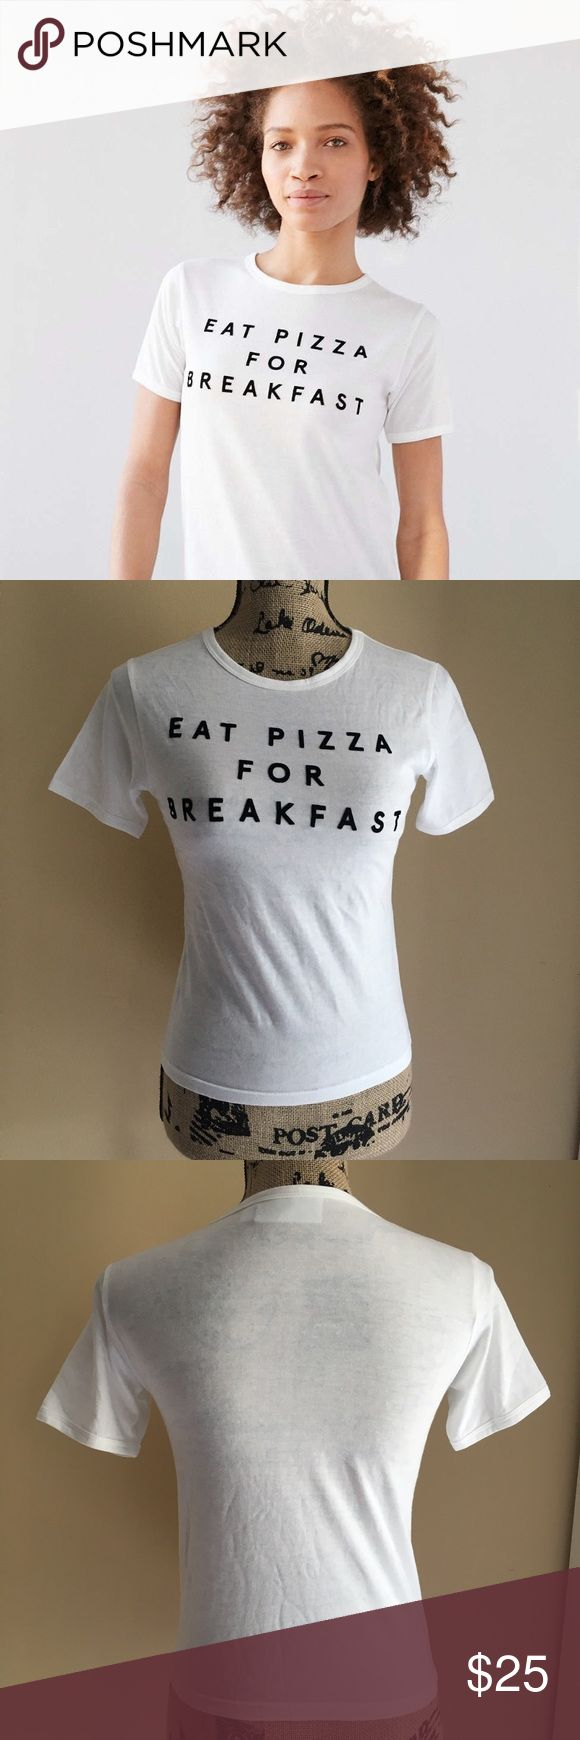 Urban Outfitters Eat Pizza For Breakfast Tee Urban Outfitters Women's White Eat Pizza For Breakfast Tee. New without tags. By part fiction Urban Outfitters Tops Tees - Short Sleeve